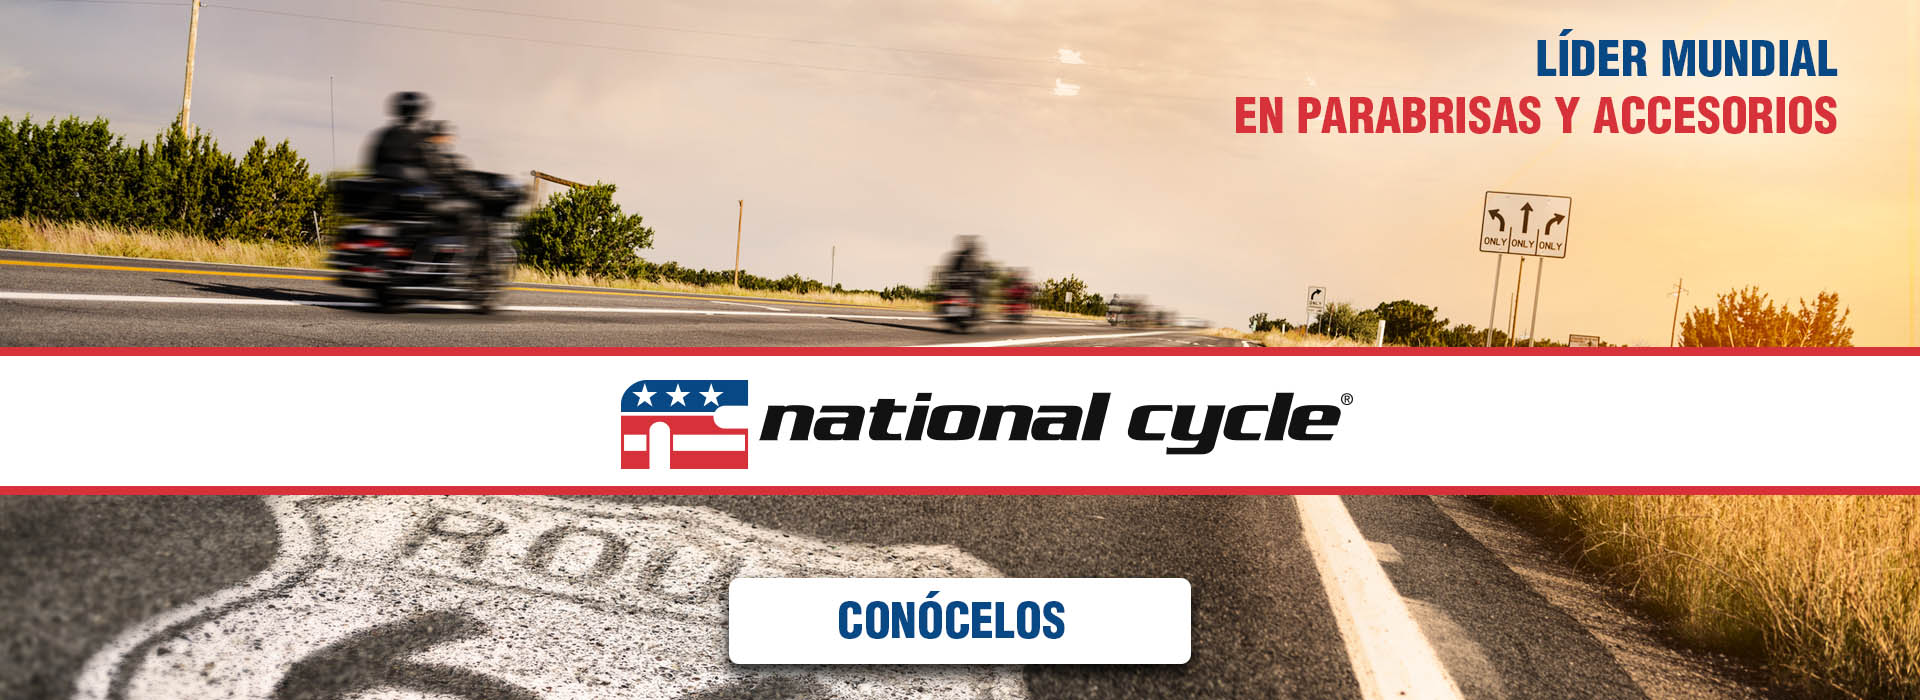 NATIONA CYCLE